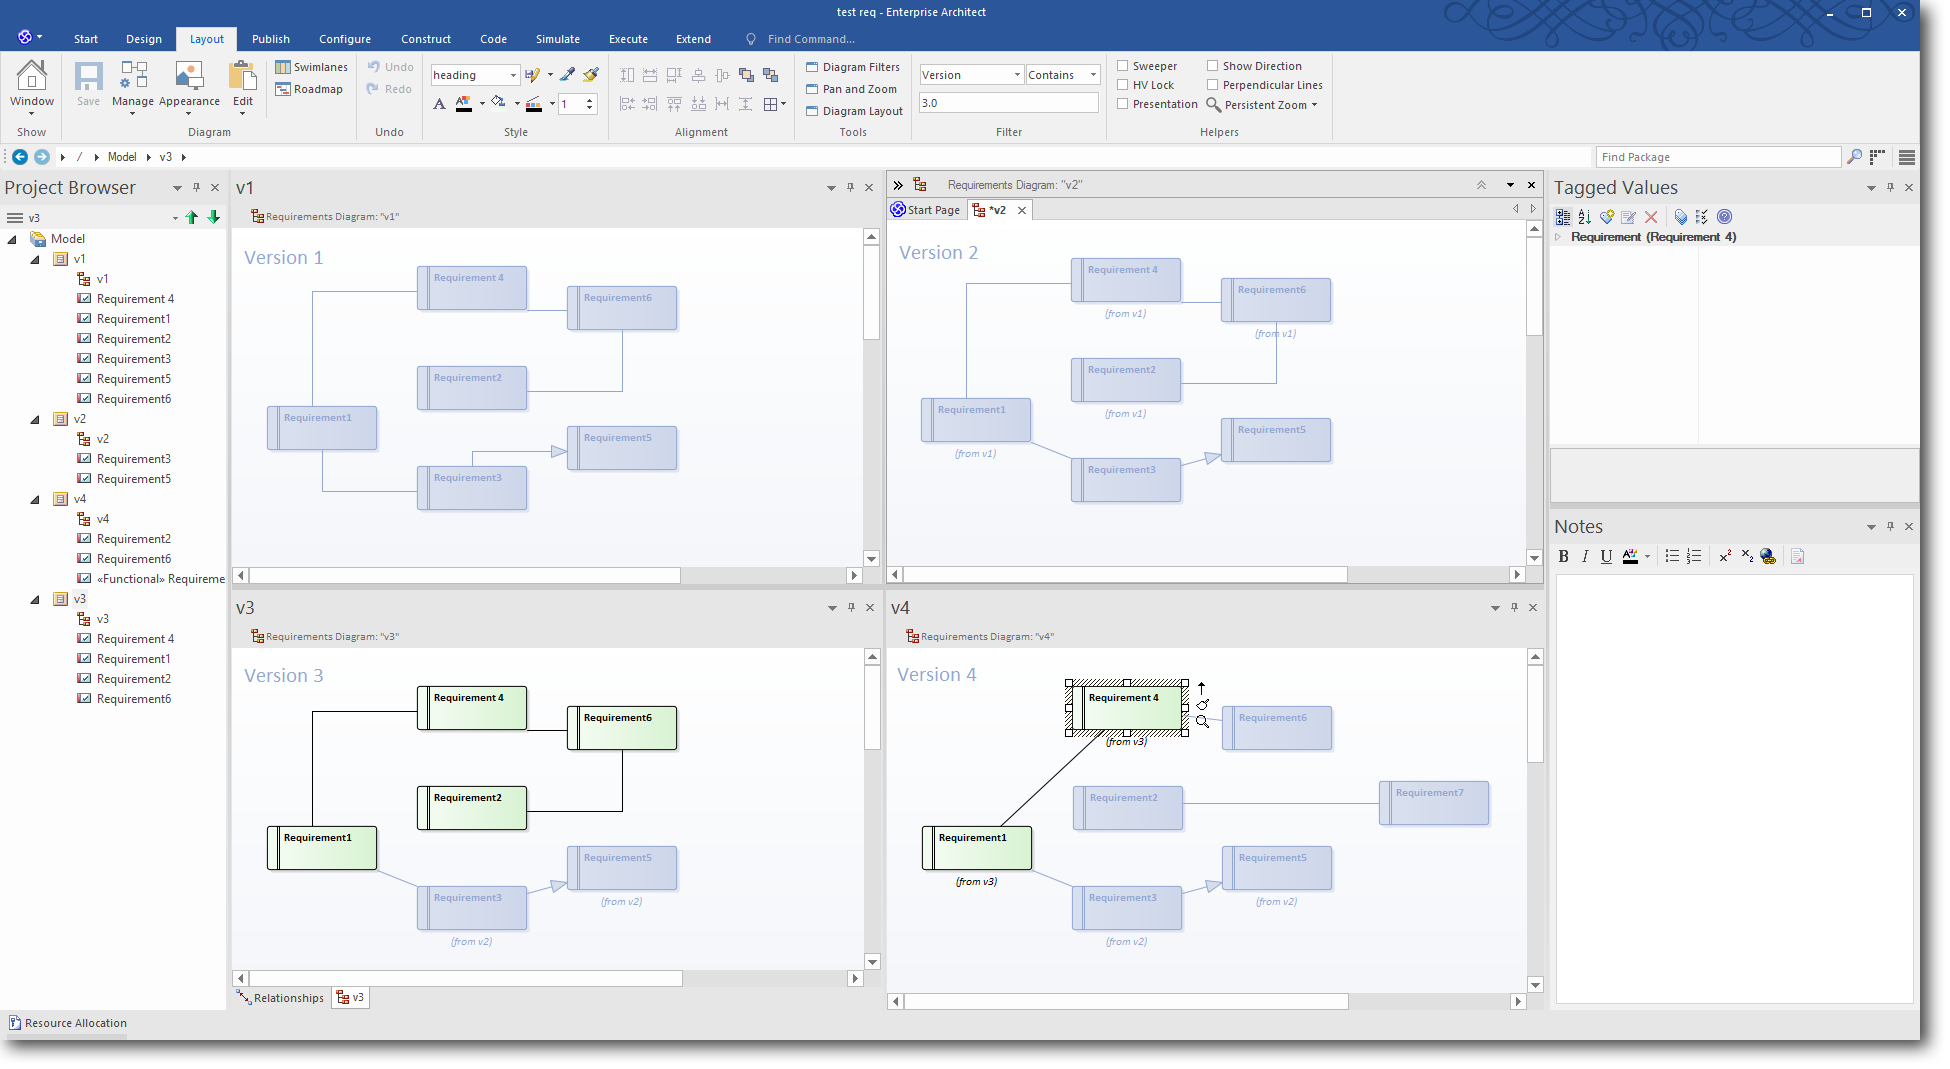 Enterprise Architect 13: Time Aware Modeling - Using a Diagram Filter to highlight Version 3.0 elements